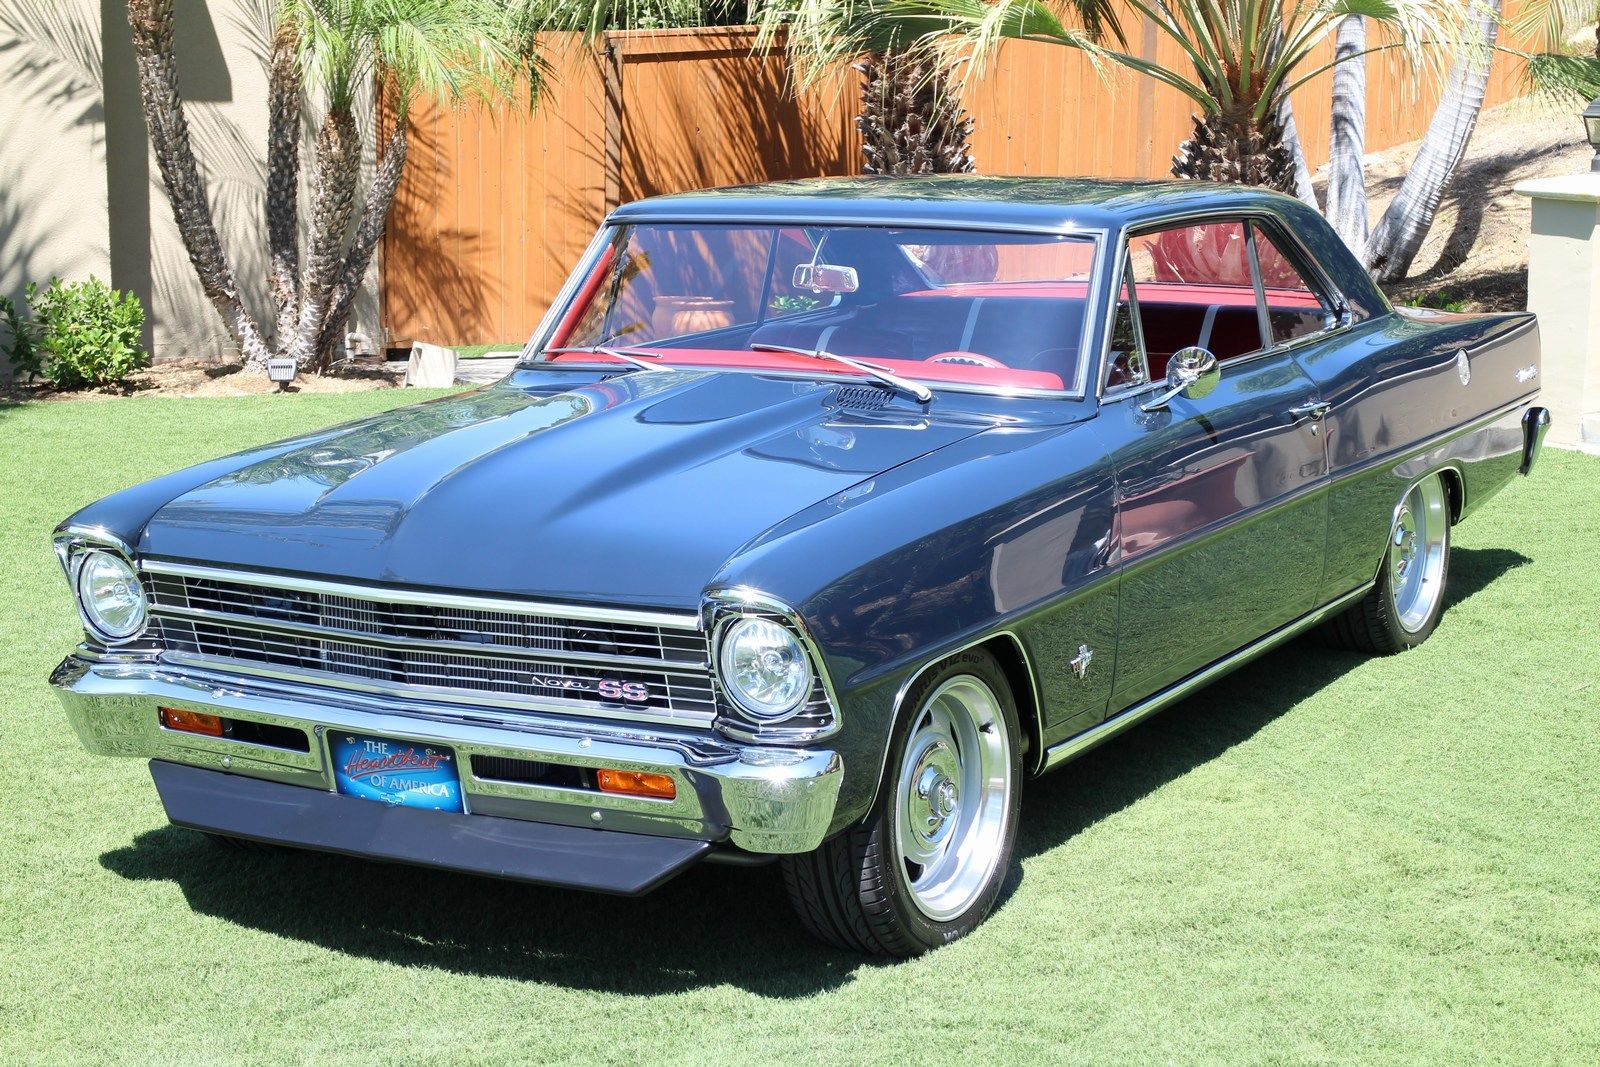 1967 Chevrolet Nova SS Tribute